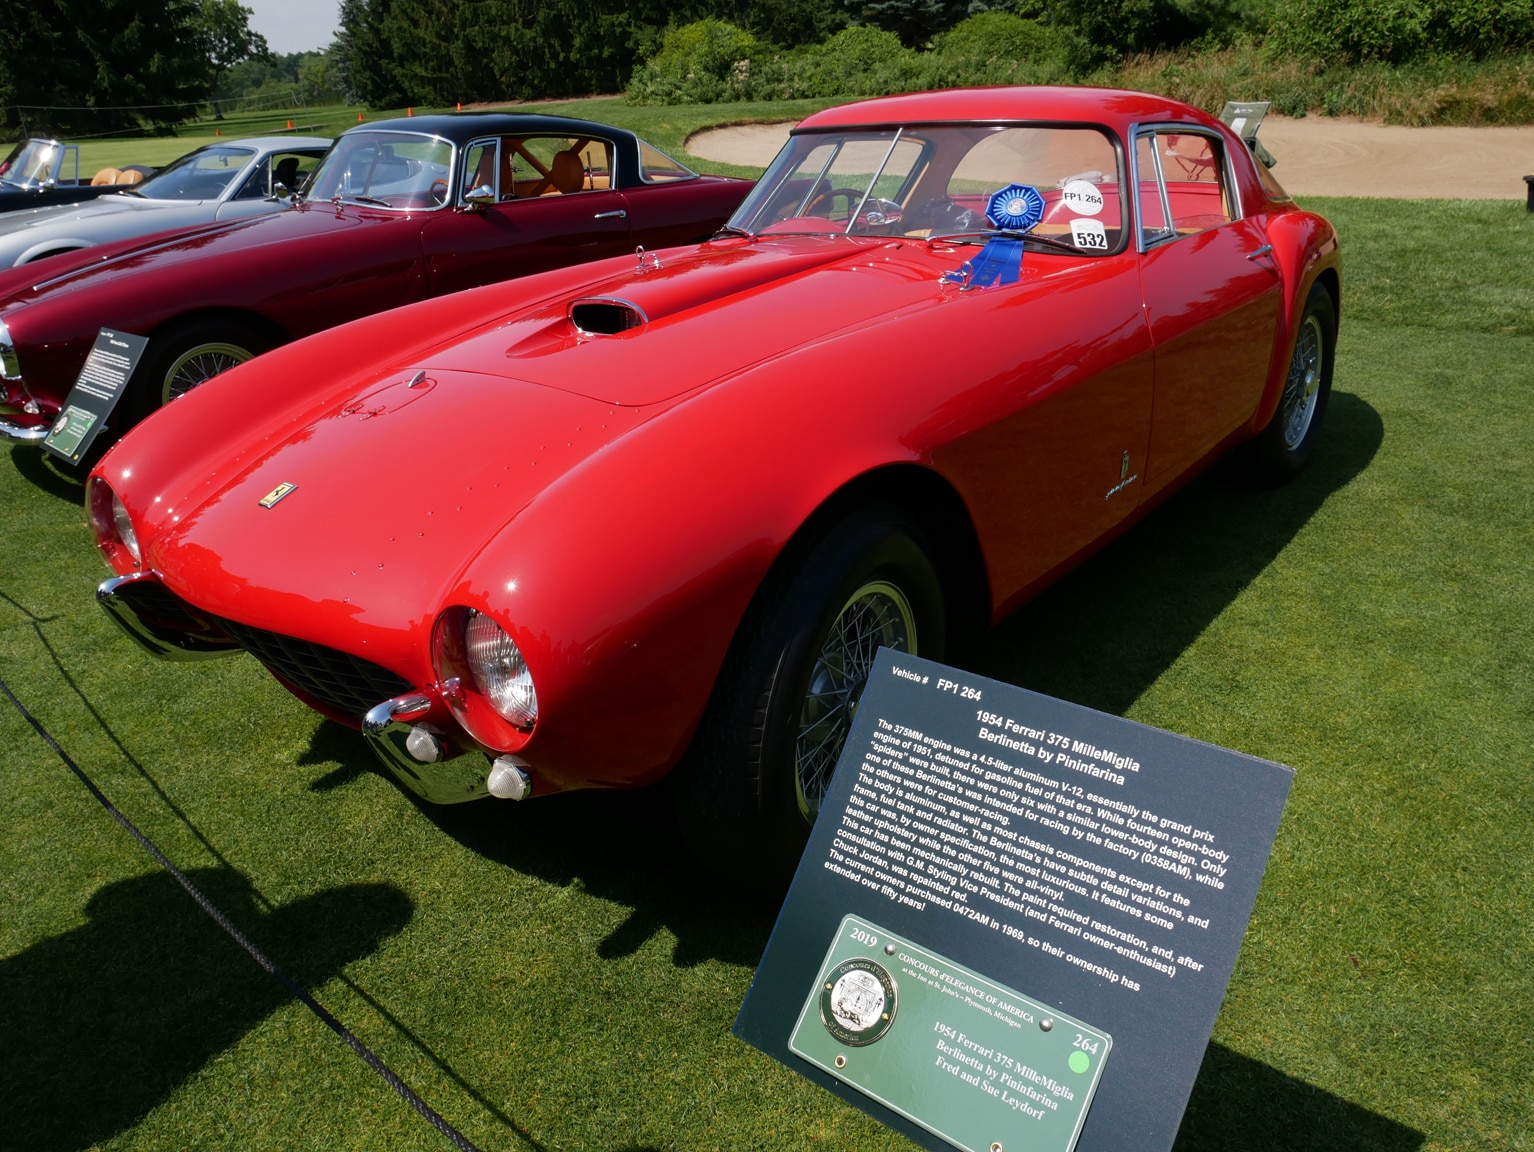 In Photos: 2019 Concours d'Elegance of America | Automobile Magazine